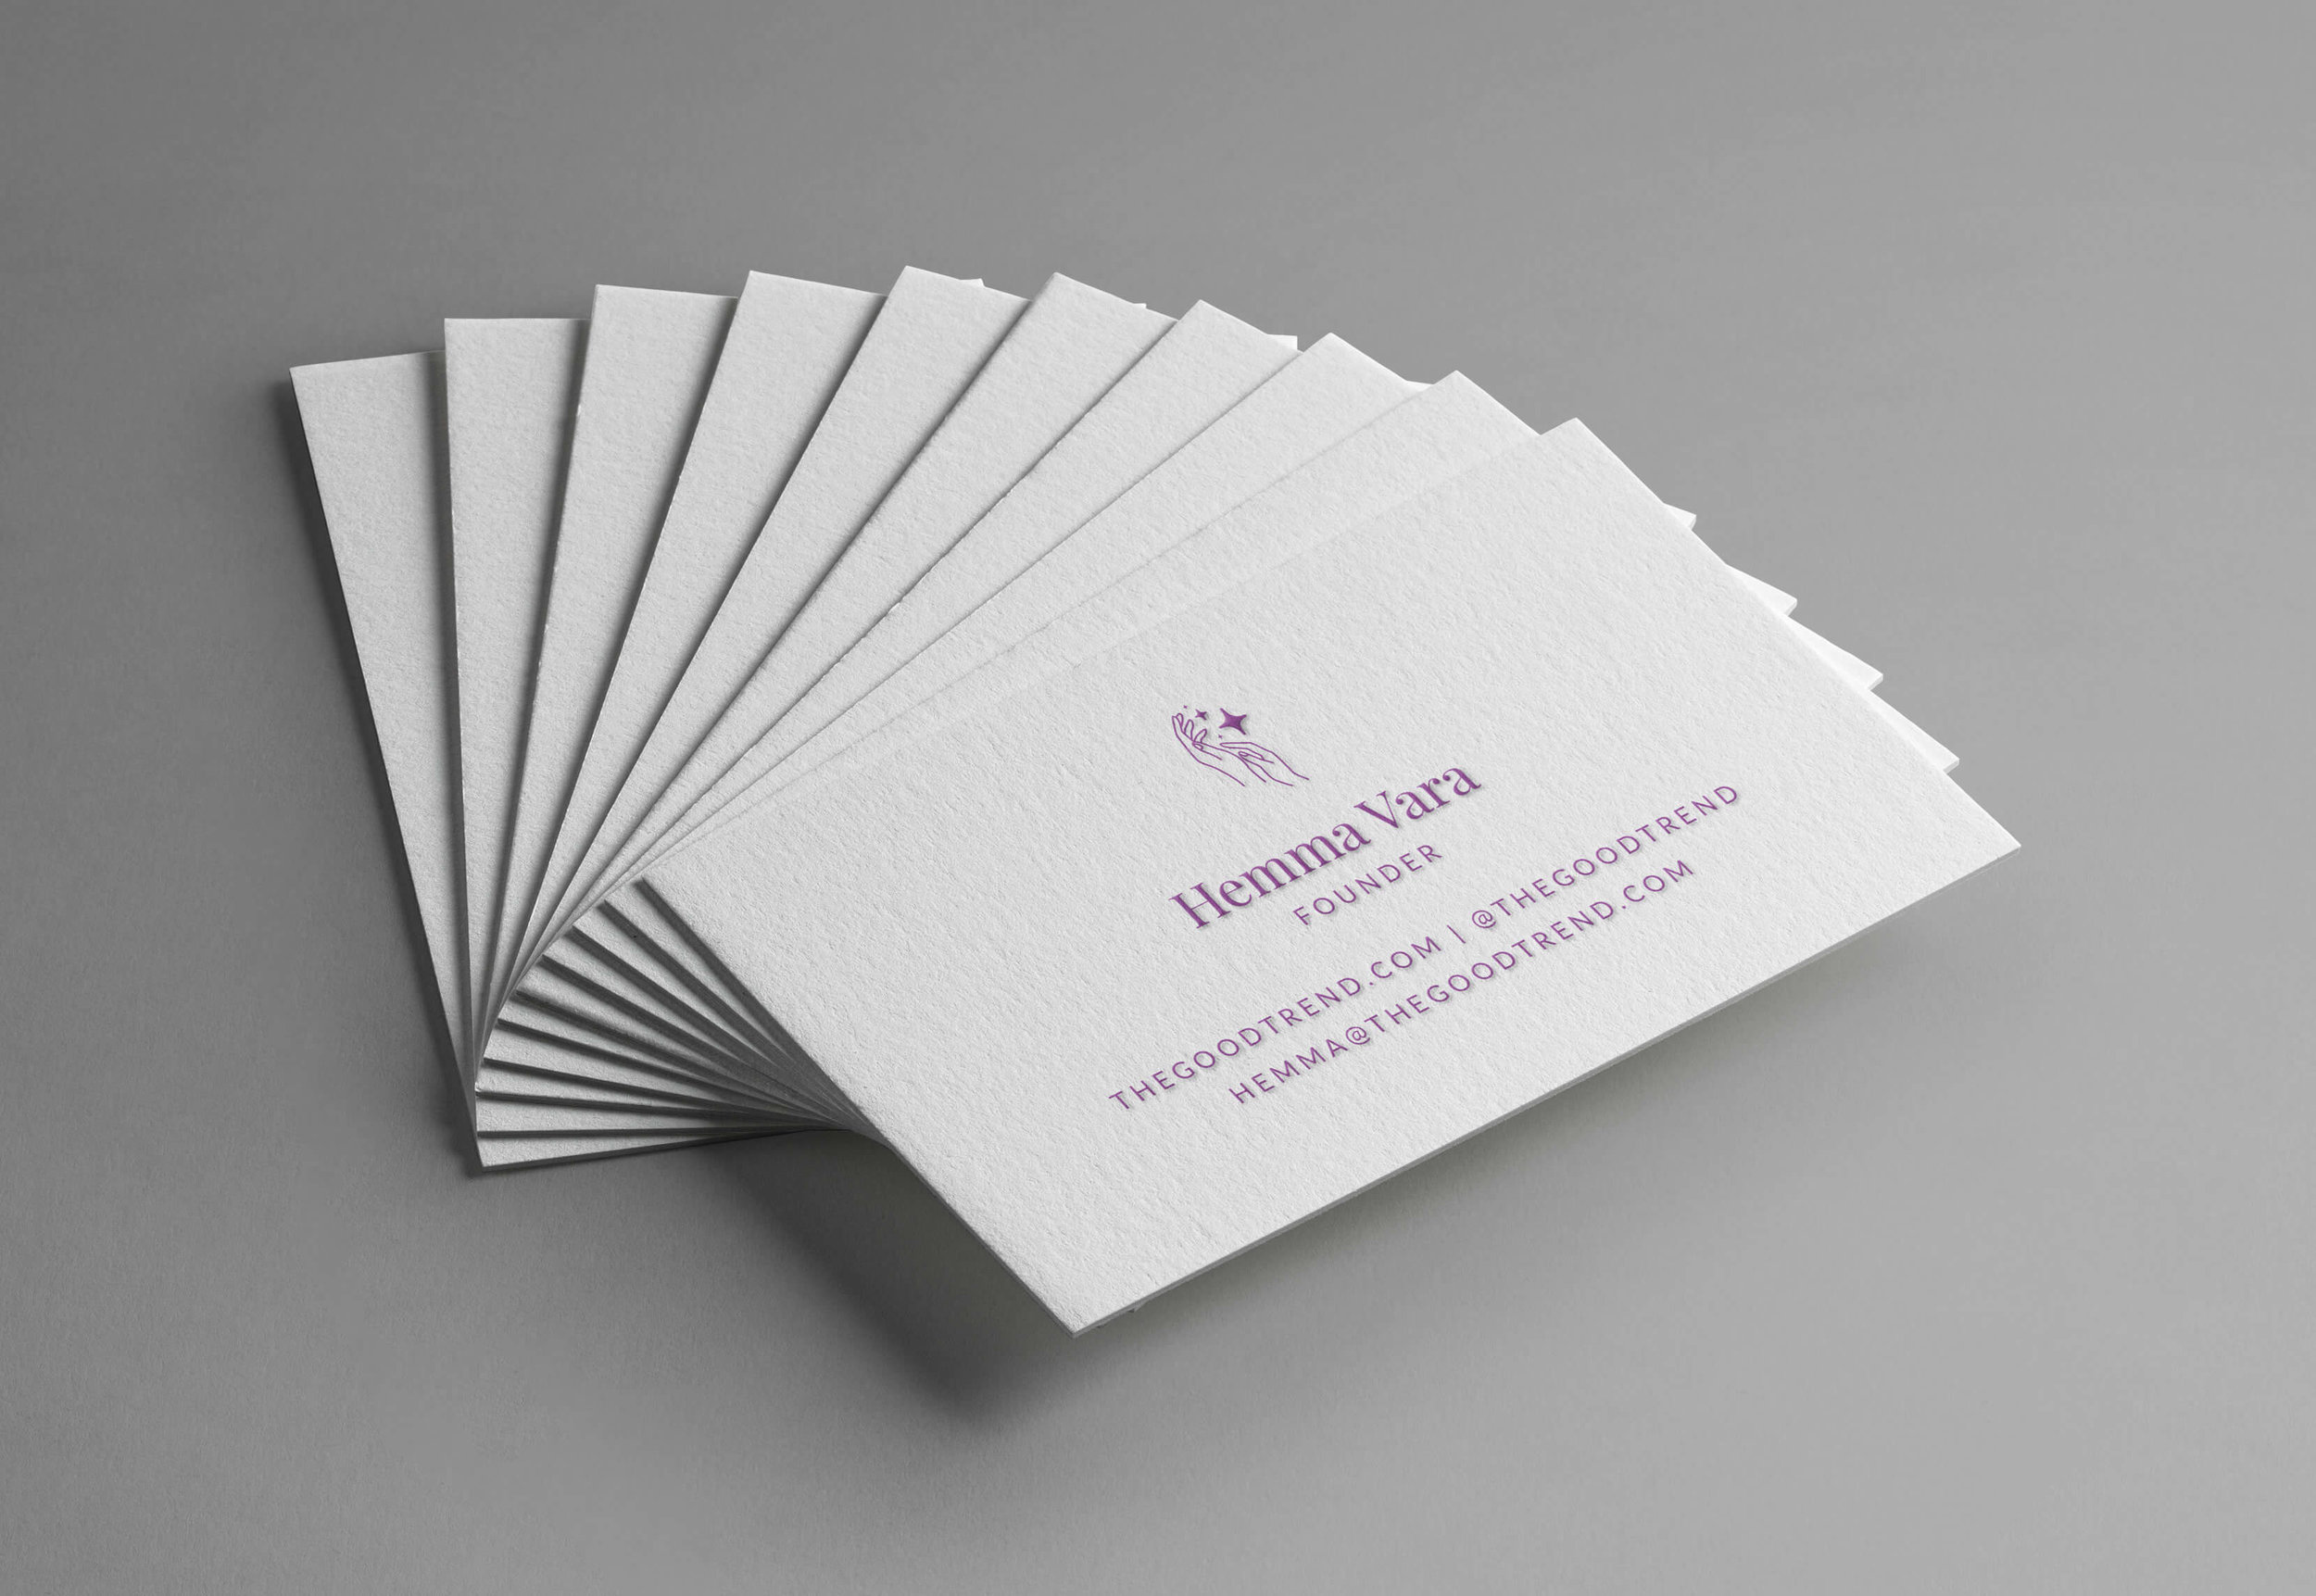 The Good Trend business cards - January Made Design